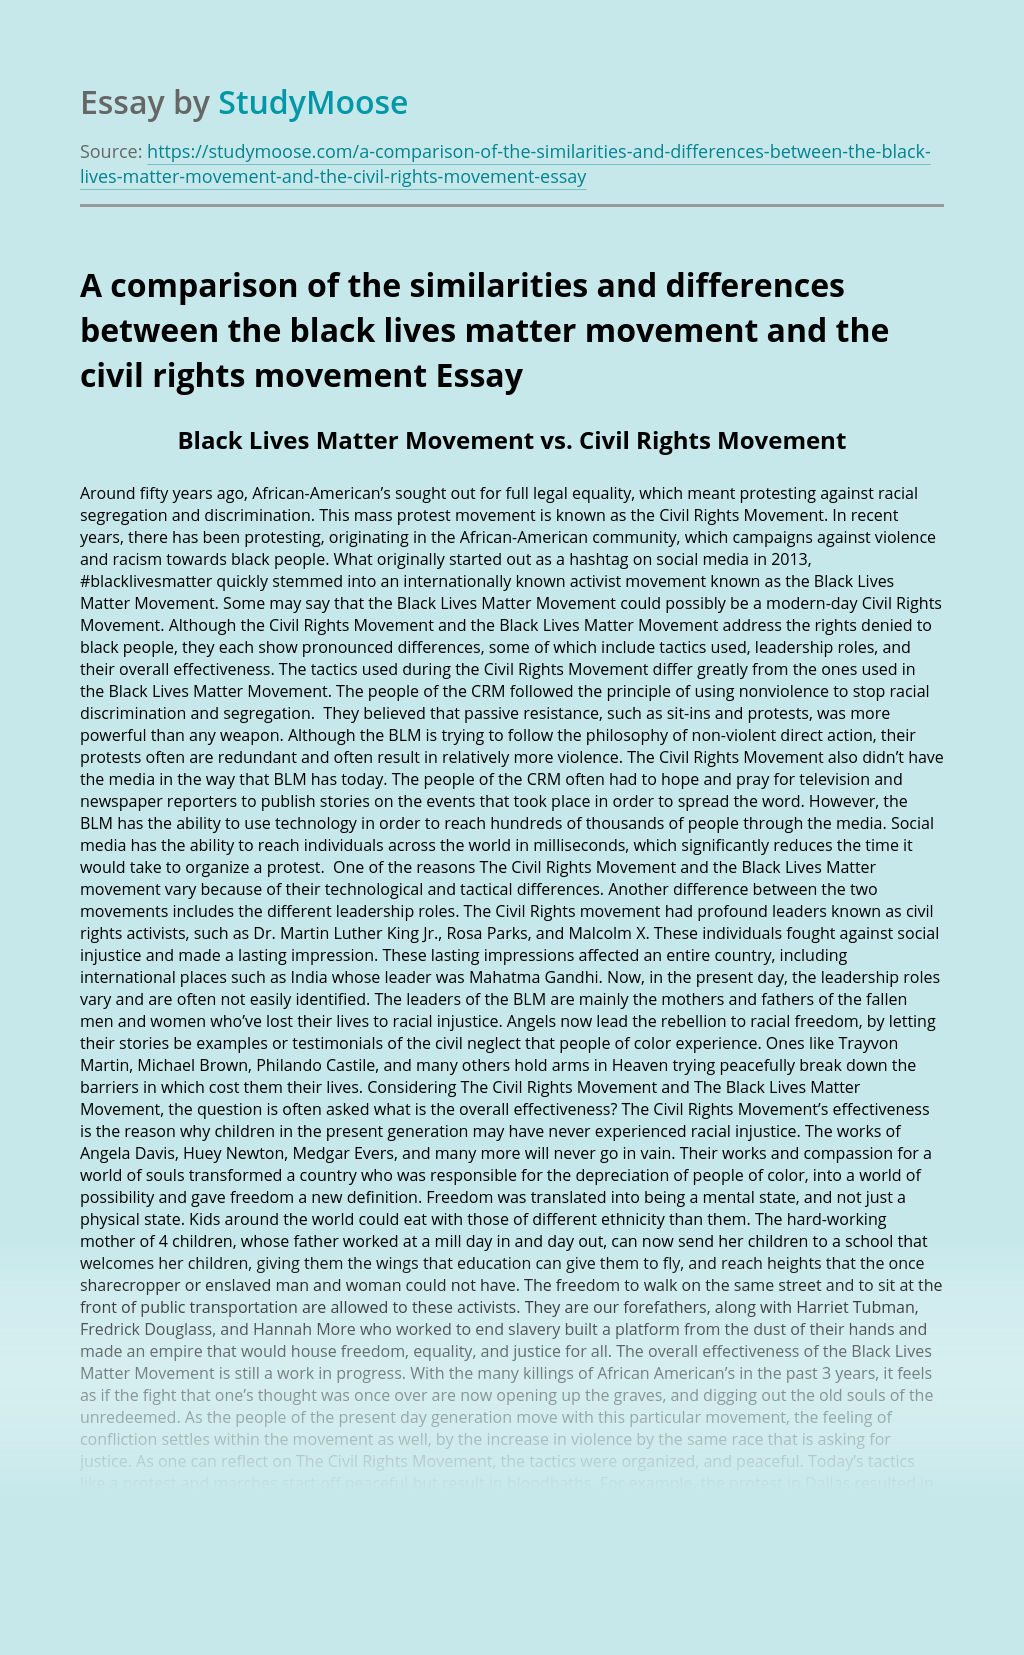 A comparison of the similarities and differences between the black lives matter movement and the civil rights movement